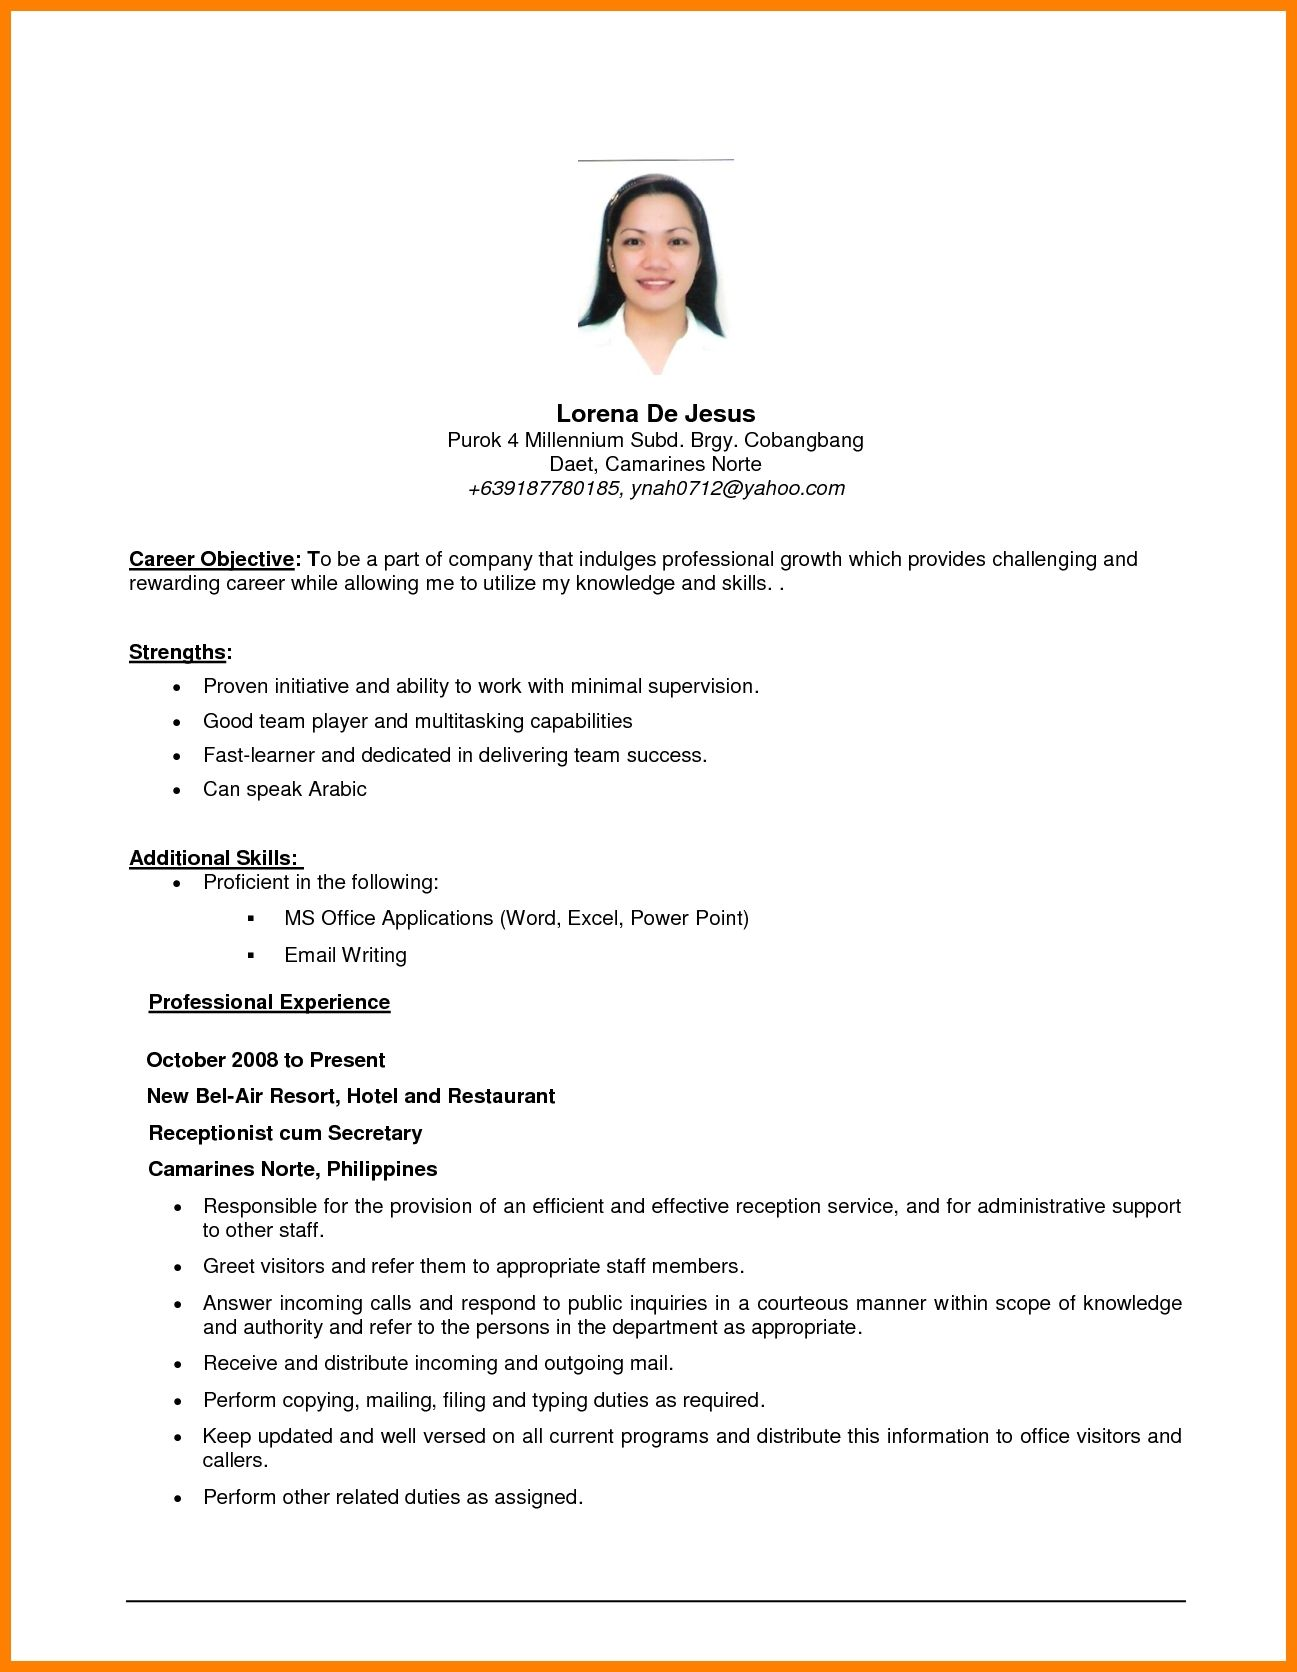 apply job to write career objective today resume examples for any position professional Resume Resume Objective Examples For Any Position